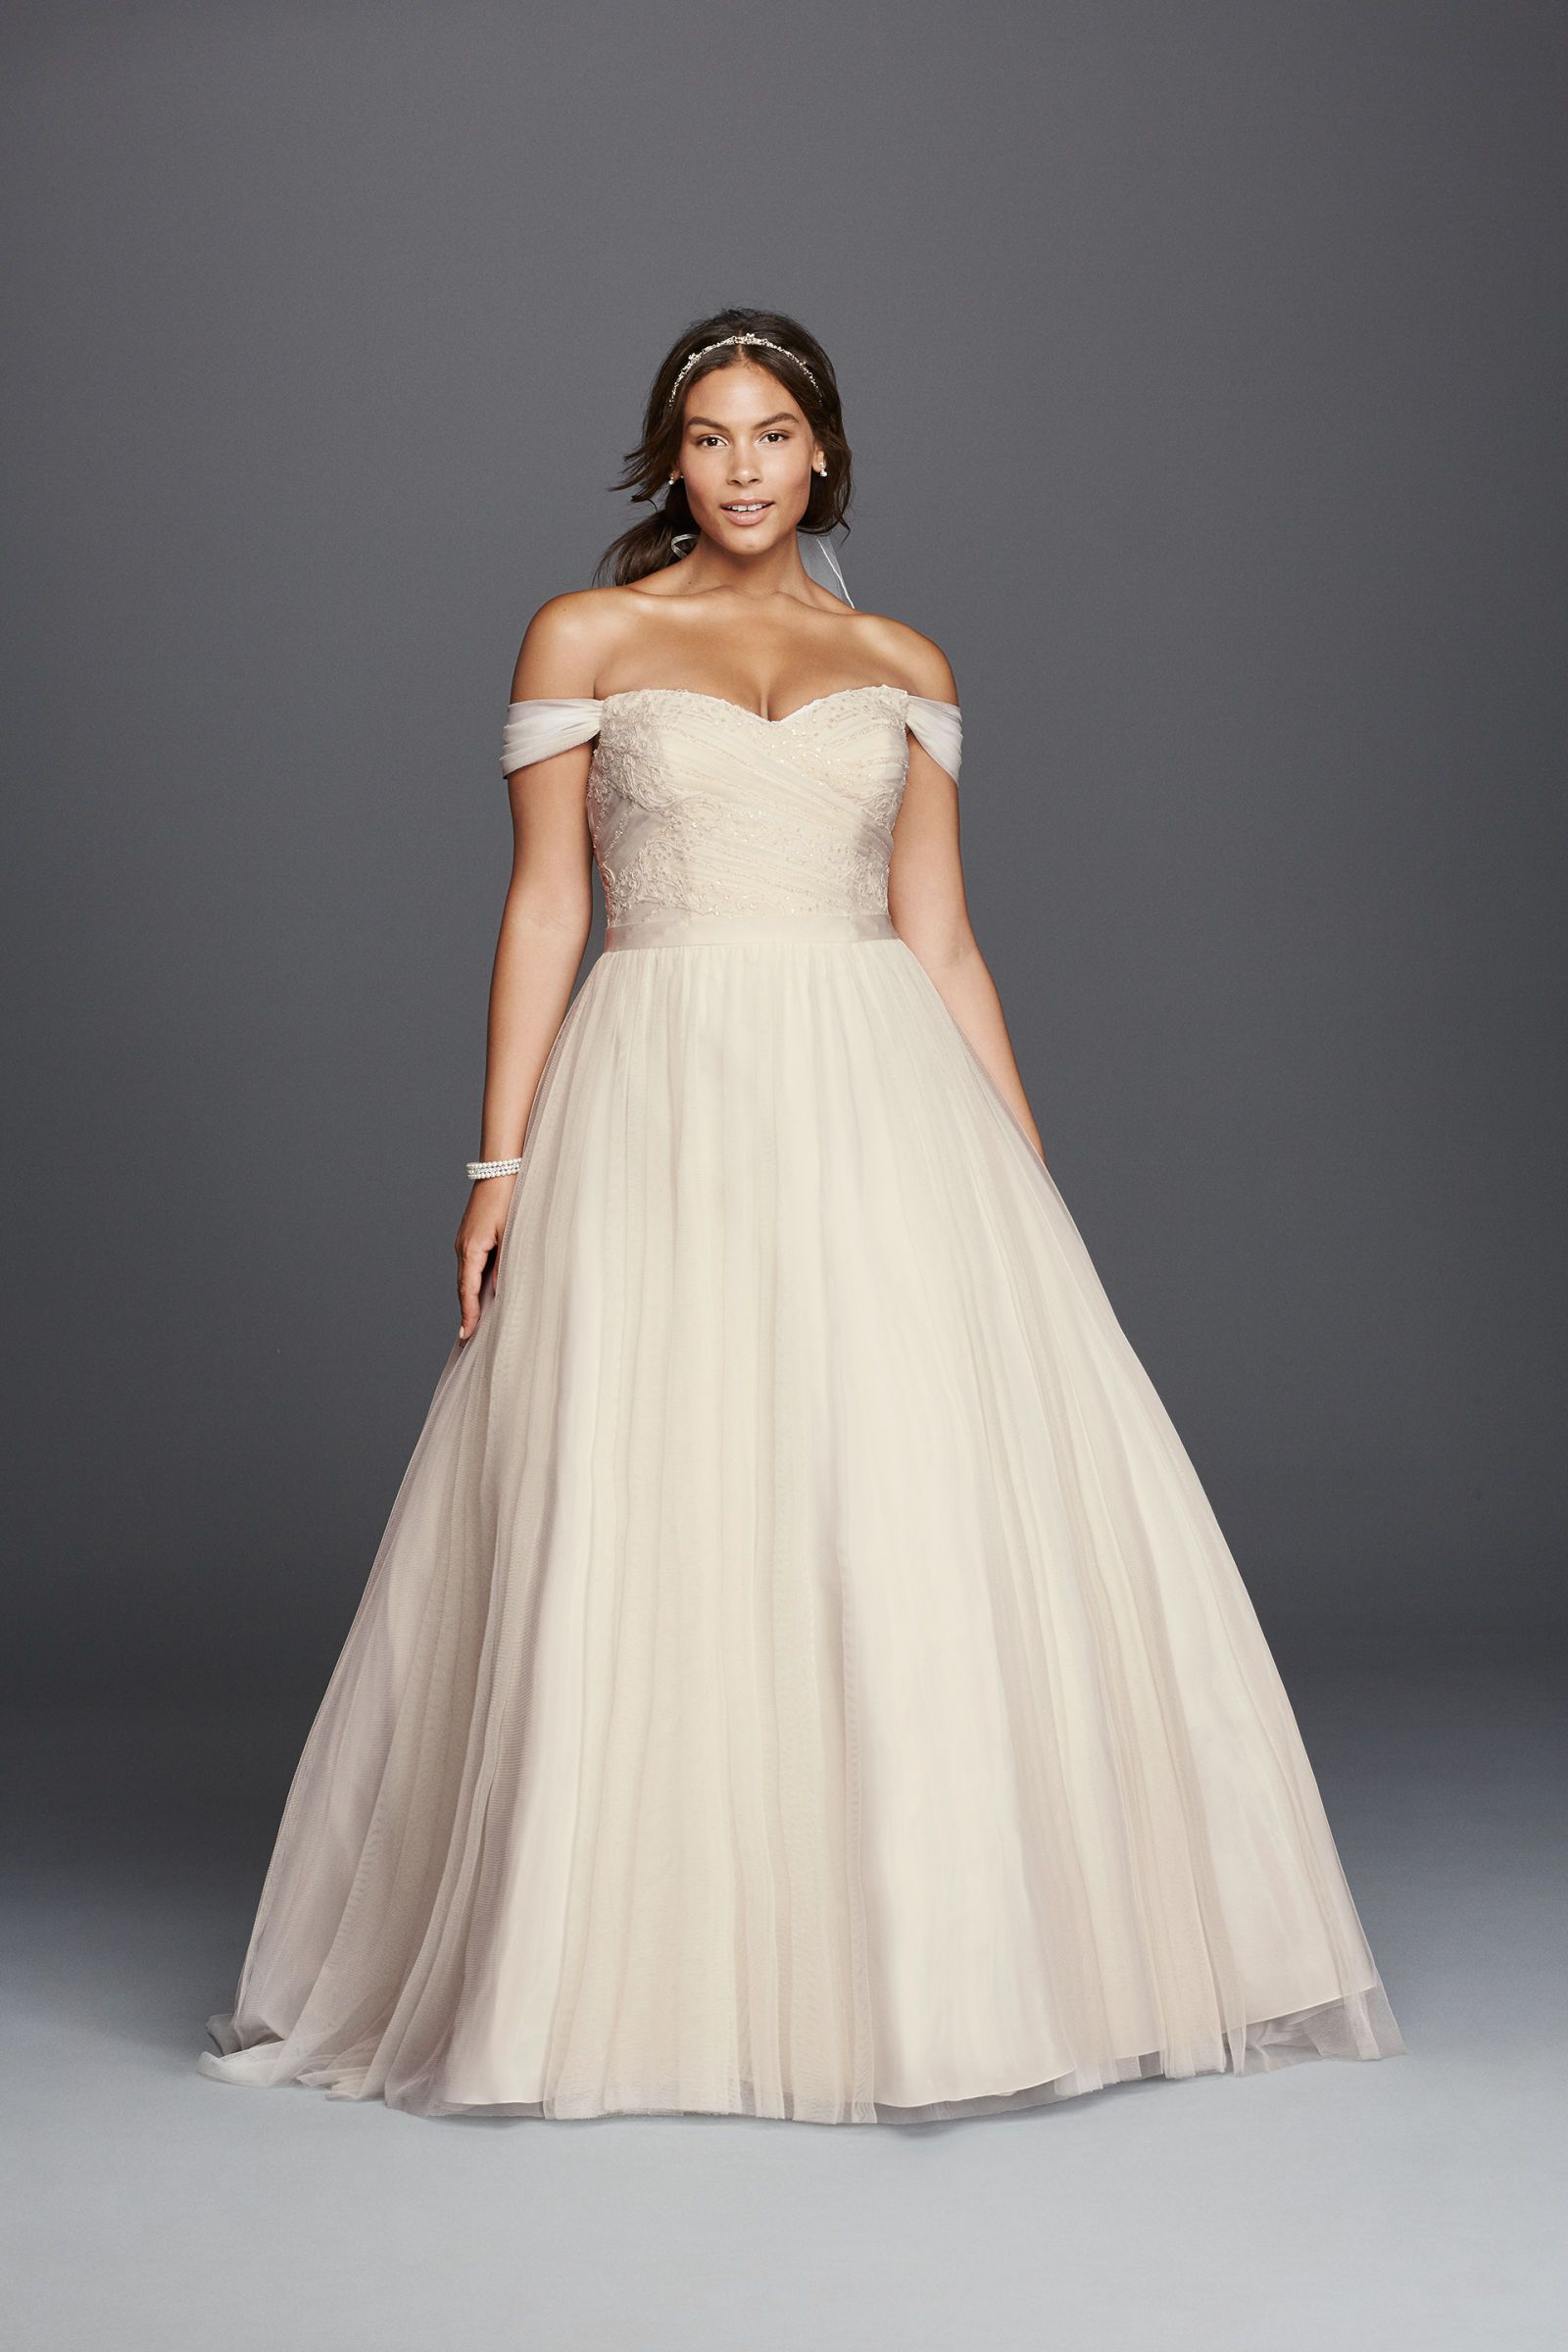 wedding dress brands for the plussize bride wedding dress